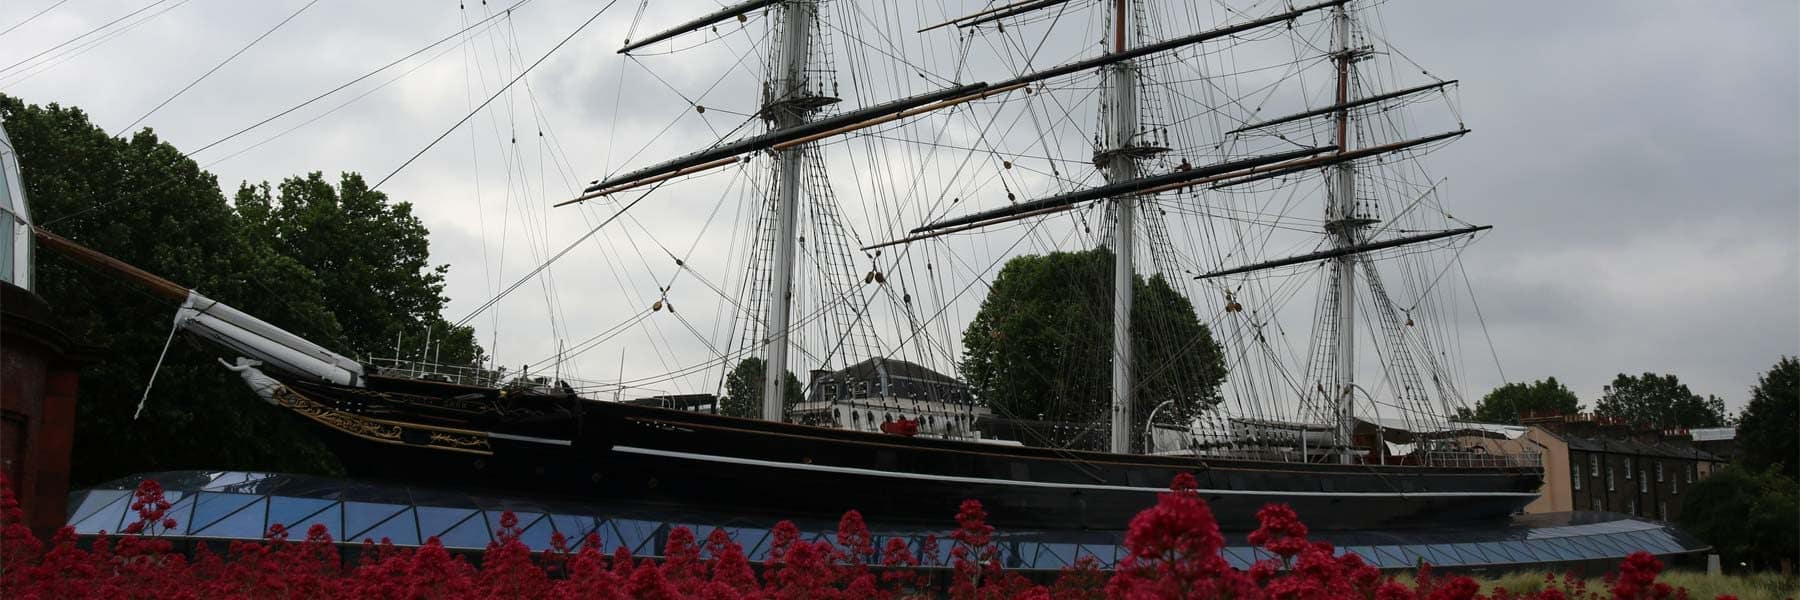 Tea Clipper Cutty Sark